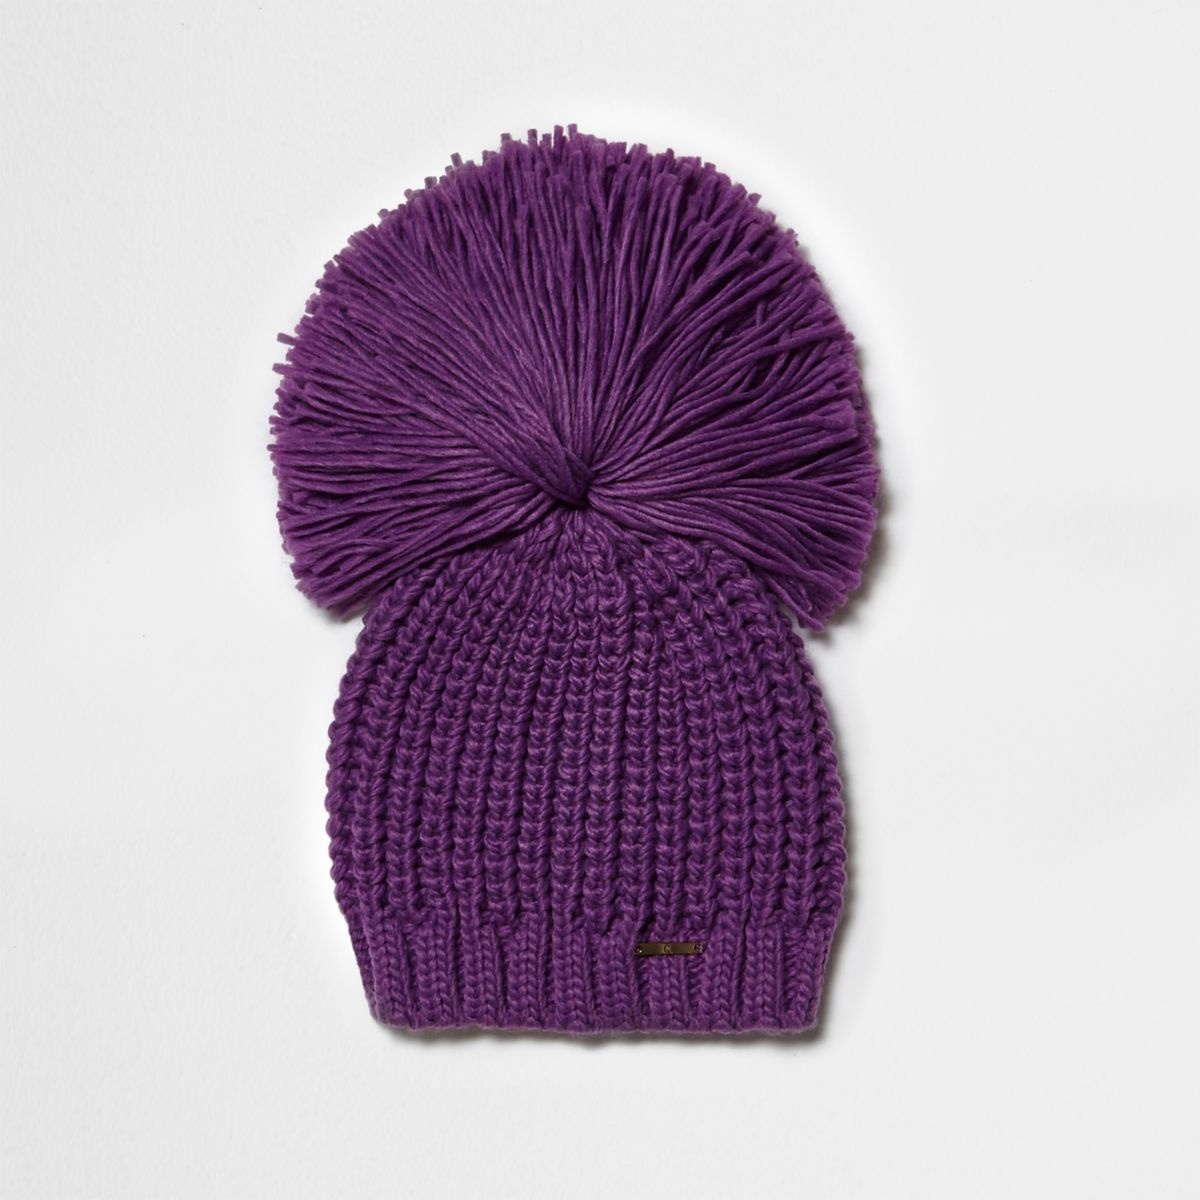 Dark purple oversized bobble beanie hat